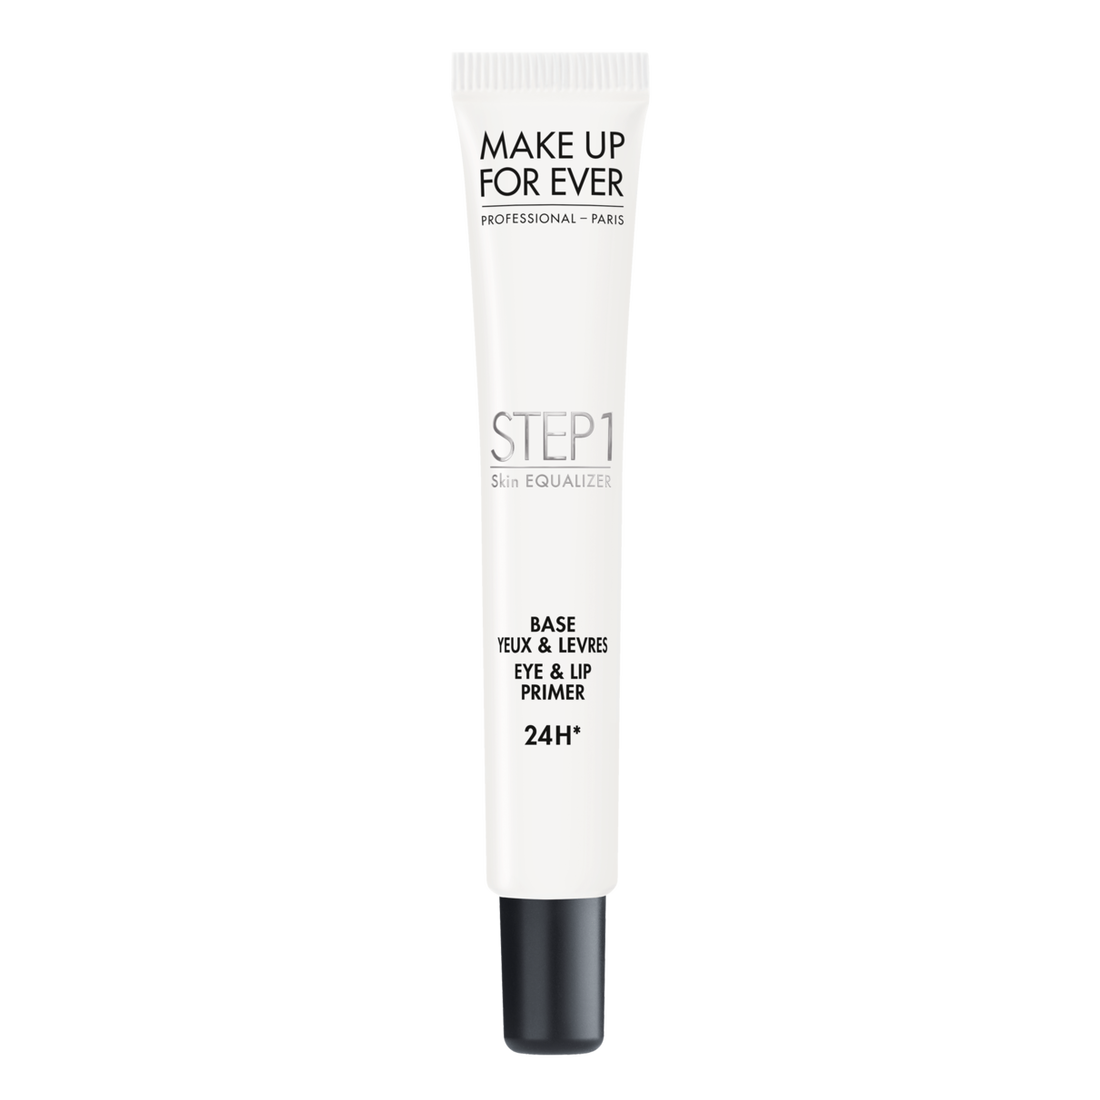 STEP1 EYE & LIP PRIMER